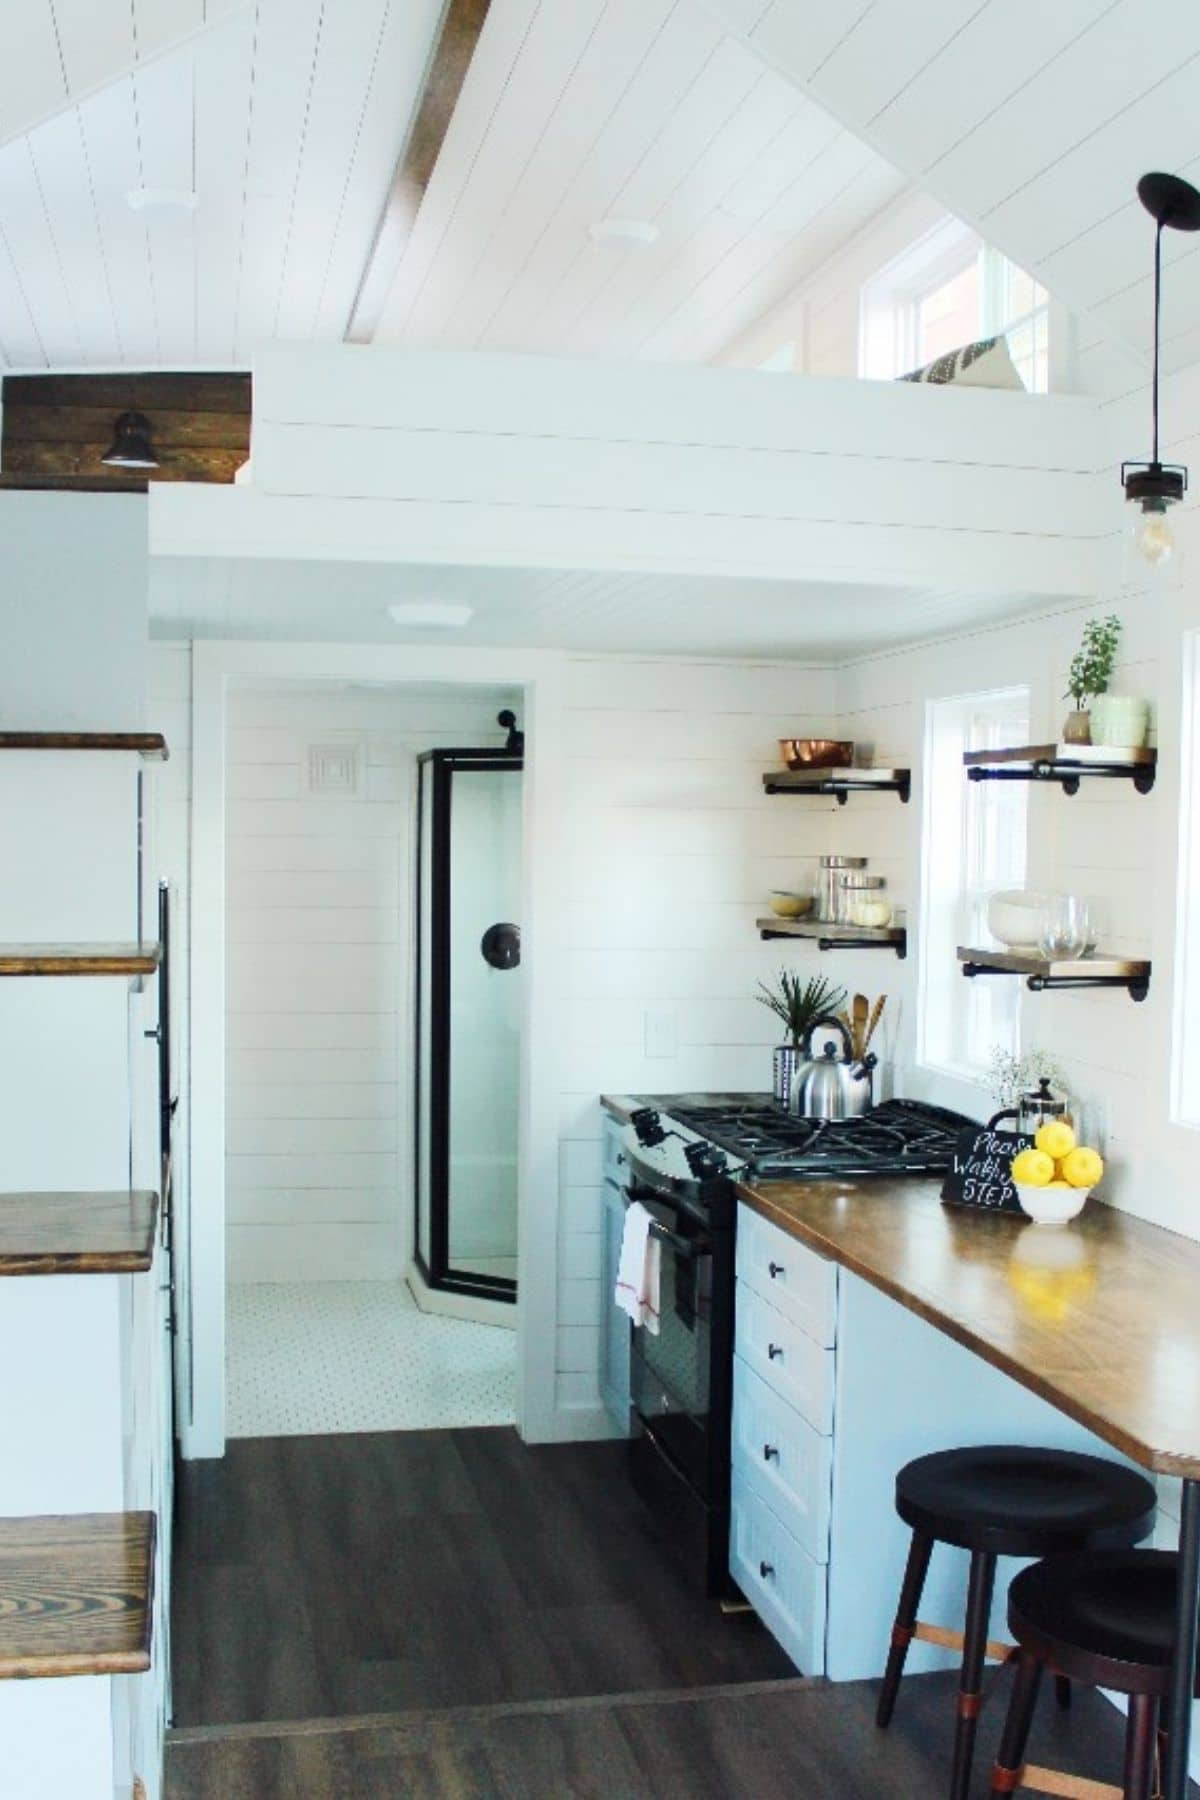 View into kitchen and open bathroom door in light tiny home